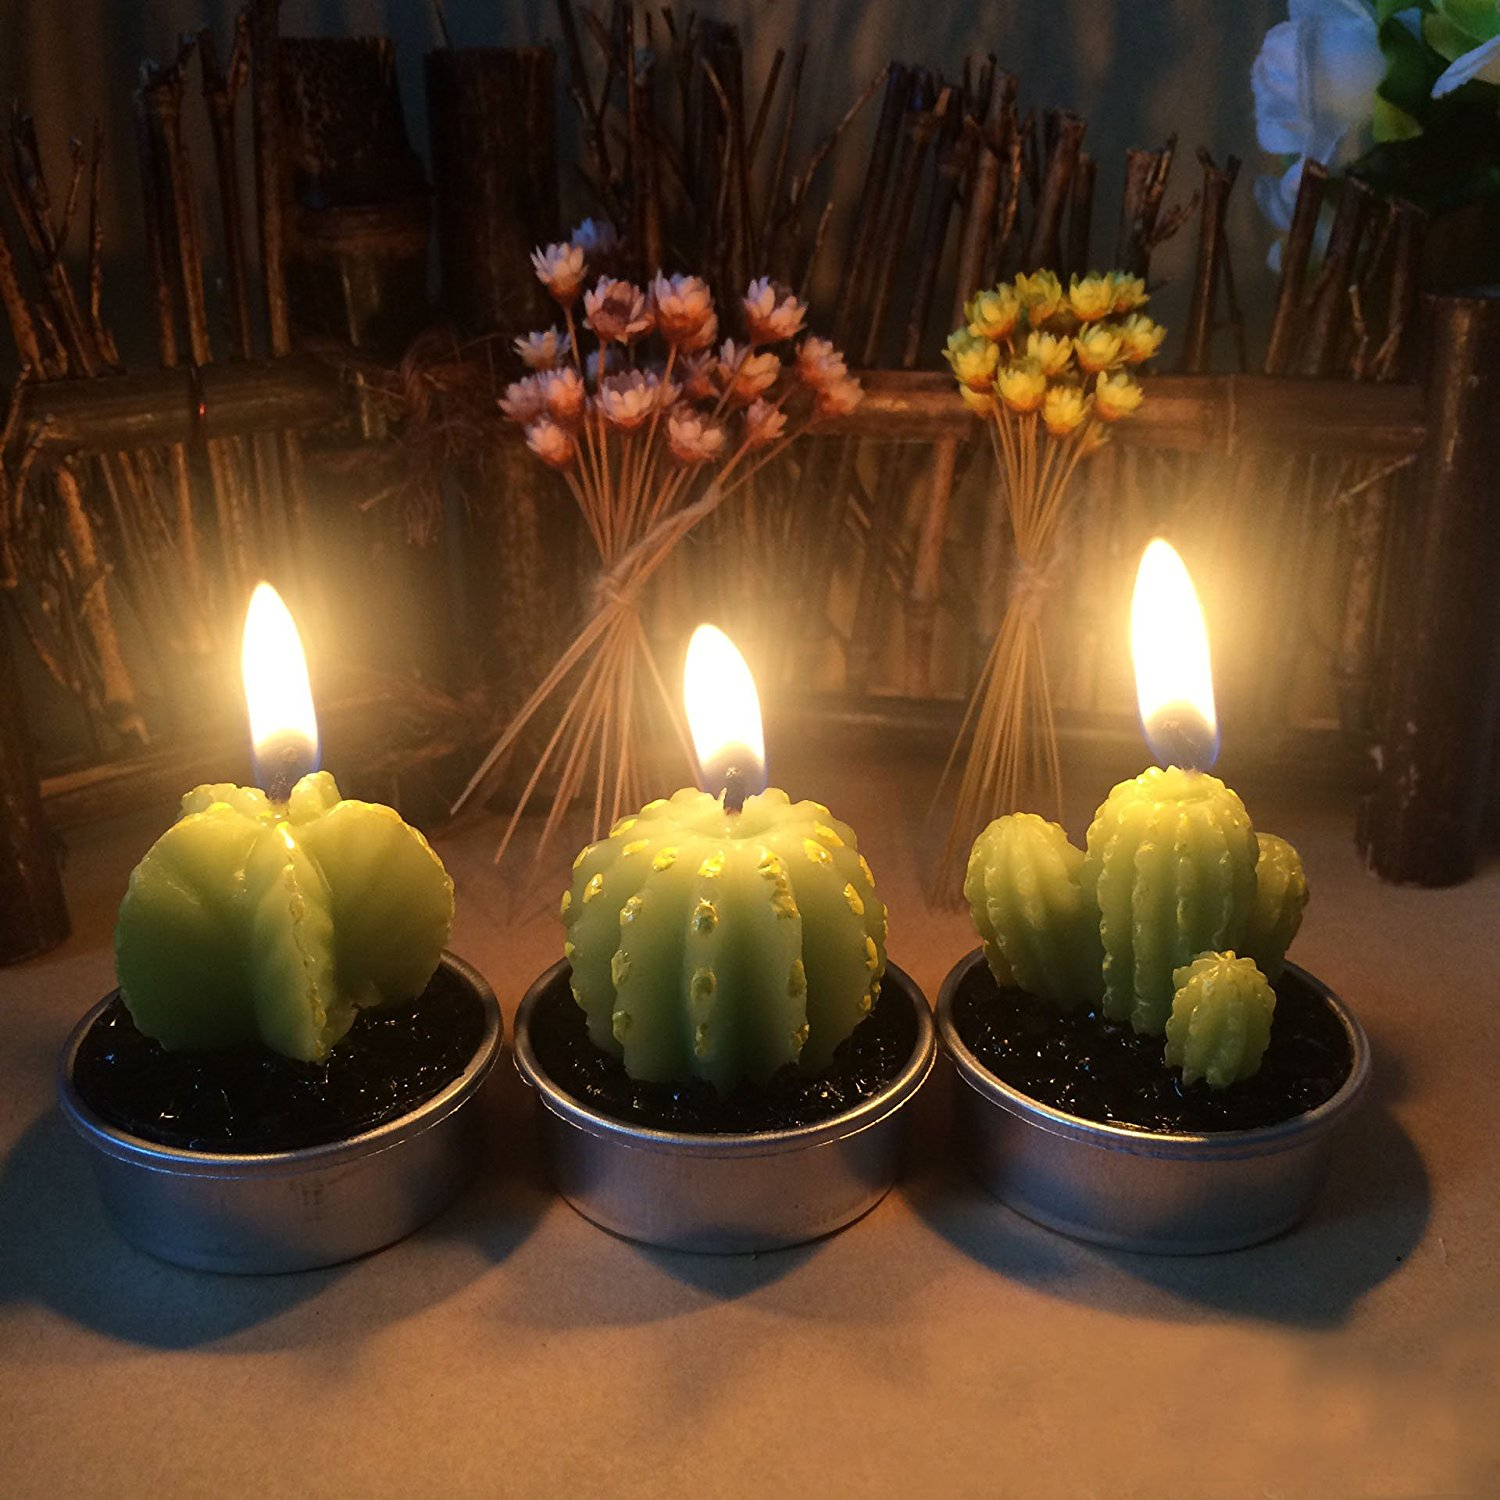 Https Www Isntthisweird Com Gift 40 Cactus Candles For Home Decor